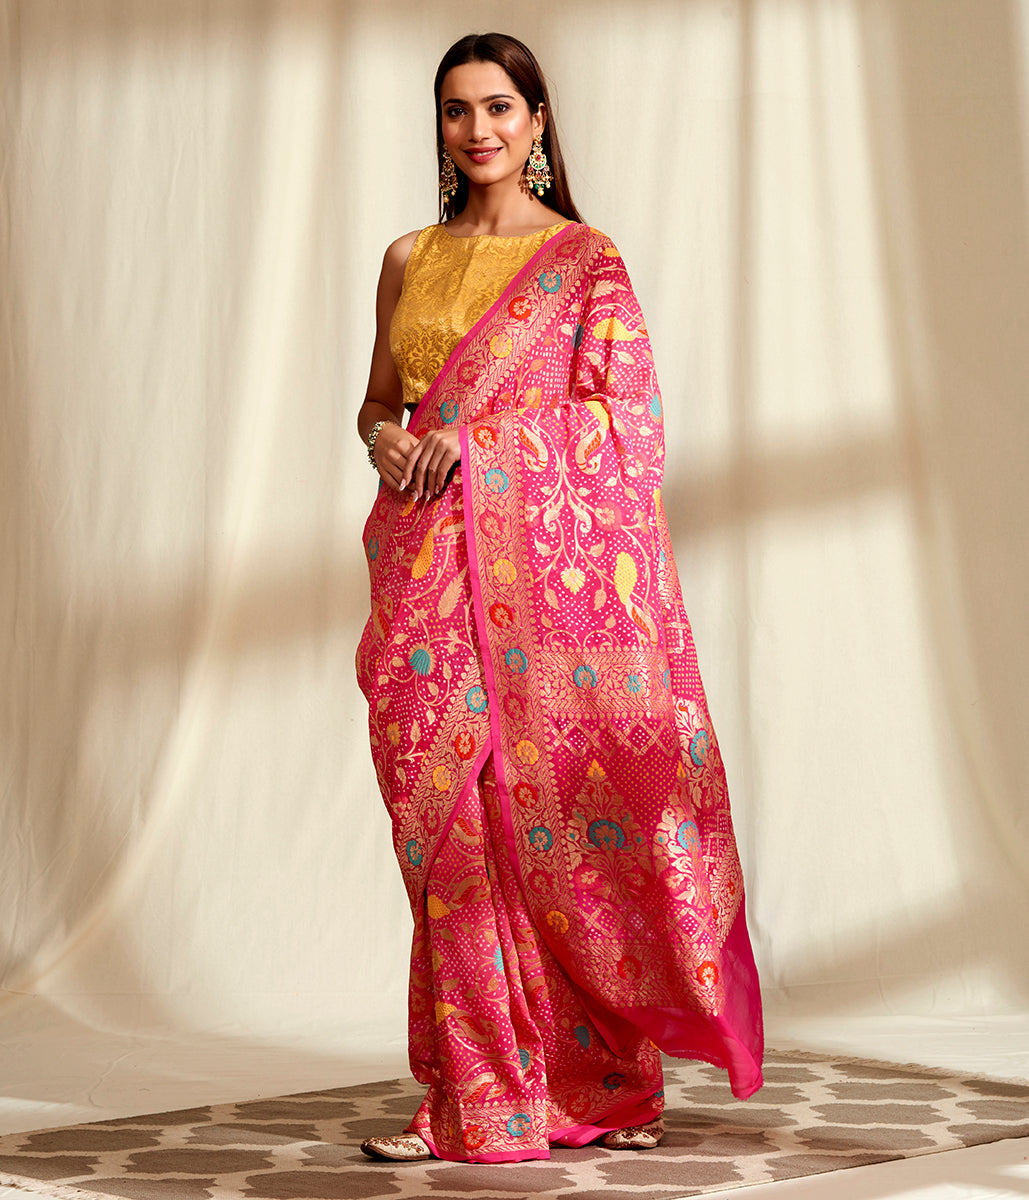 Handwoven Banarasi Bandhej Saree in Pink with Meenakari Jangla